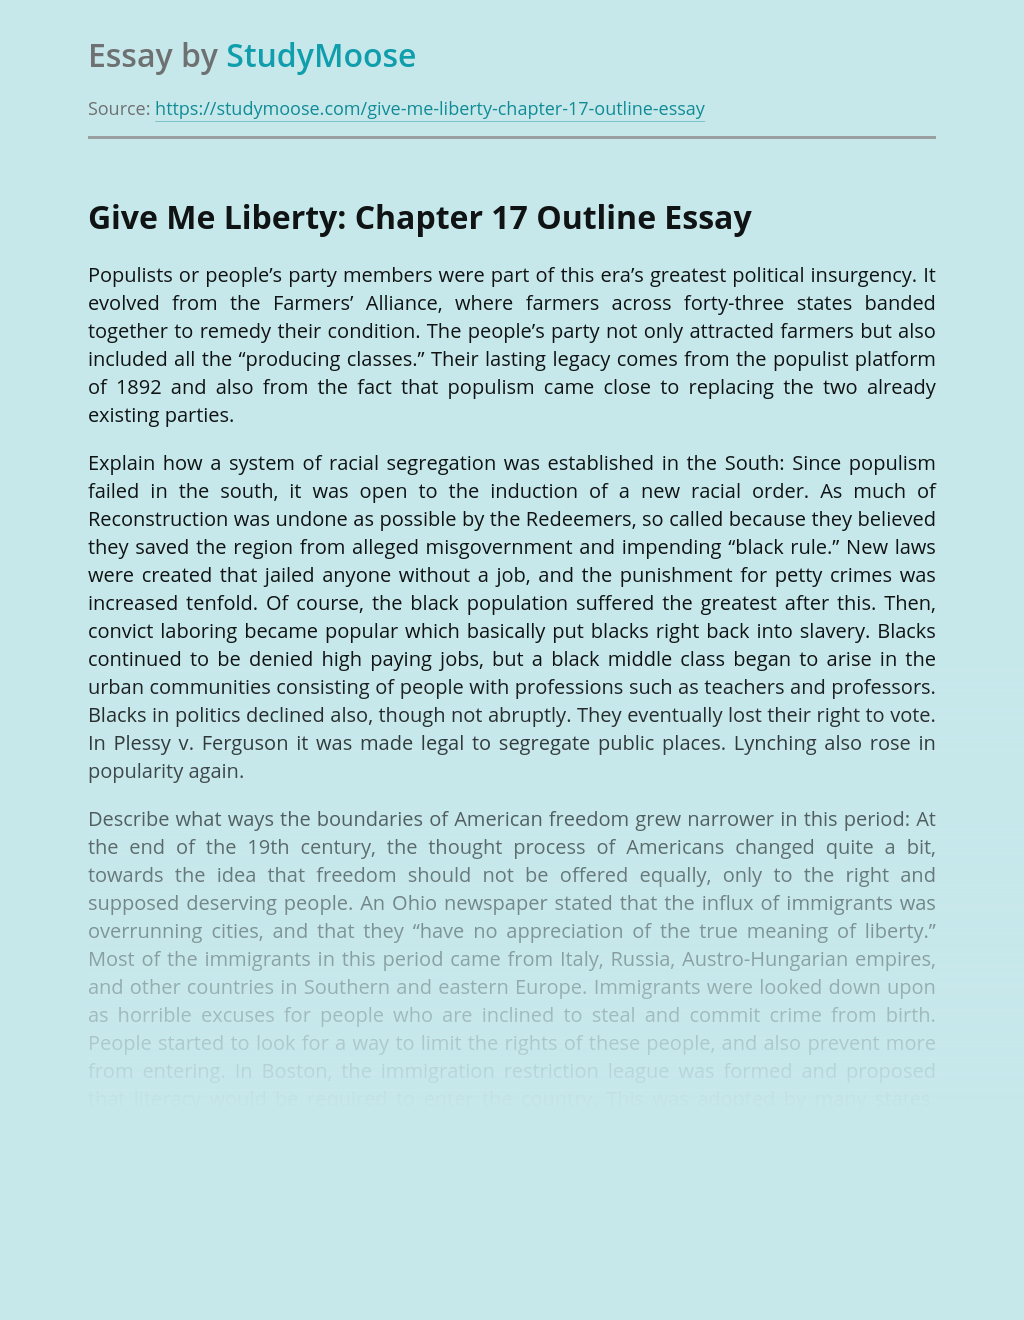 Give Me Liberty: Chapter 17 Outline